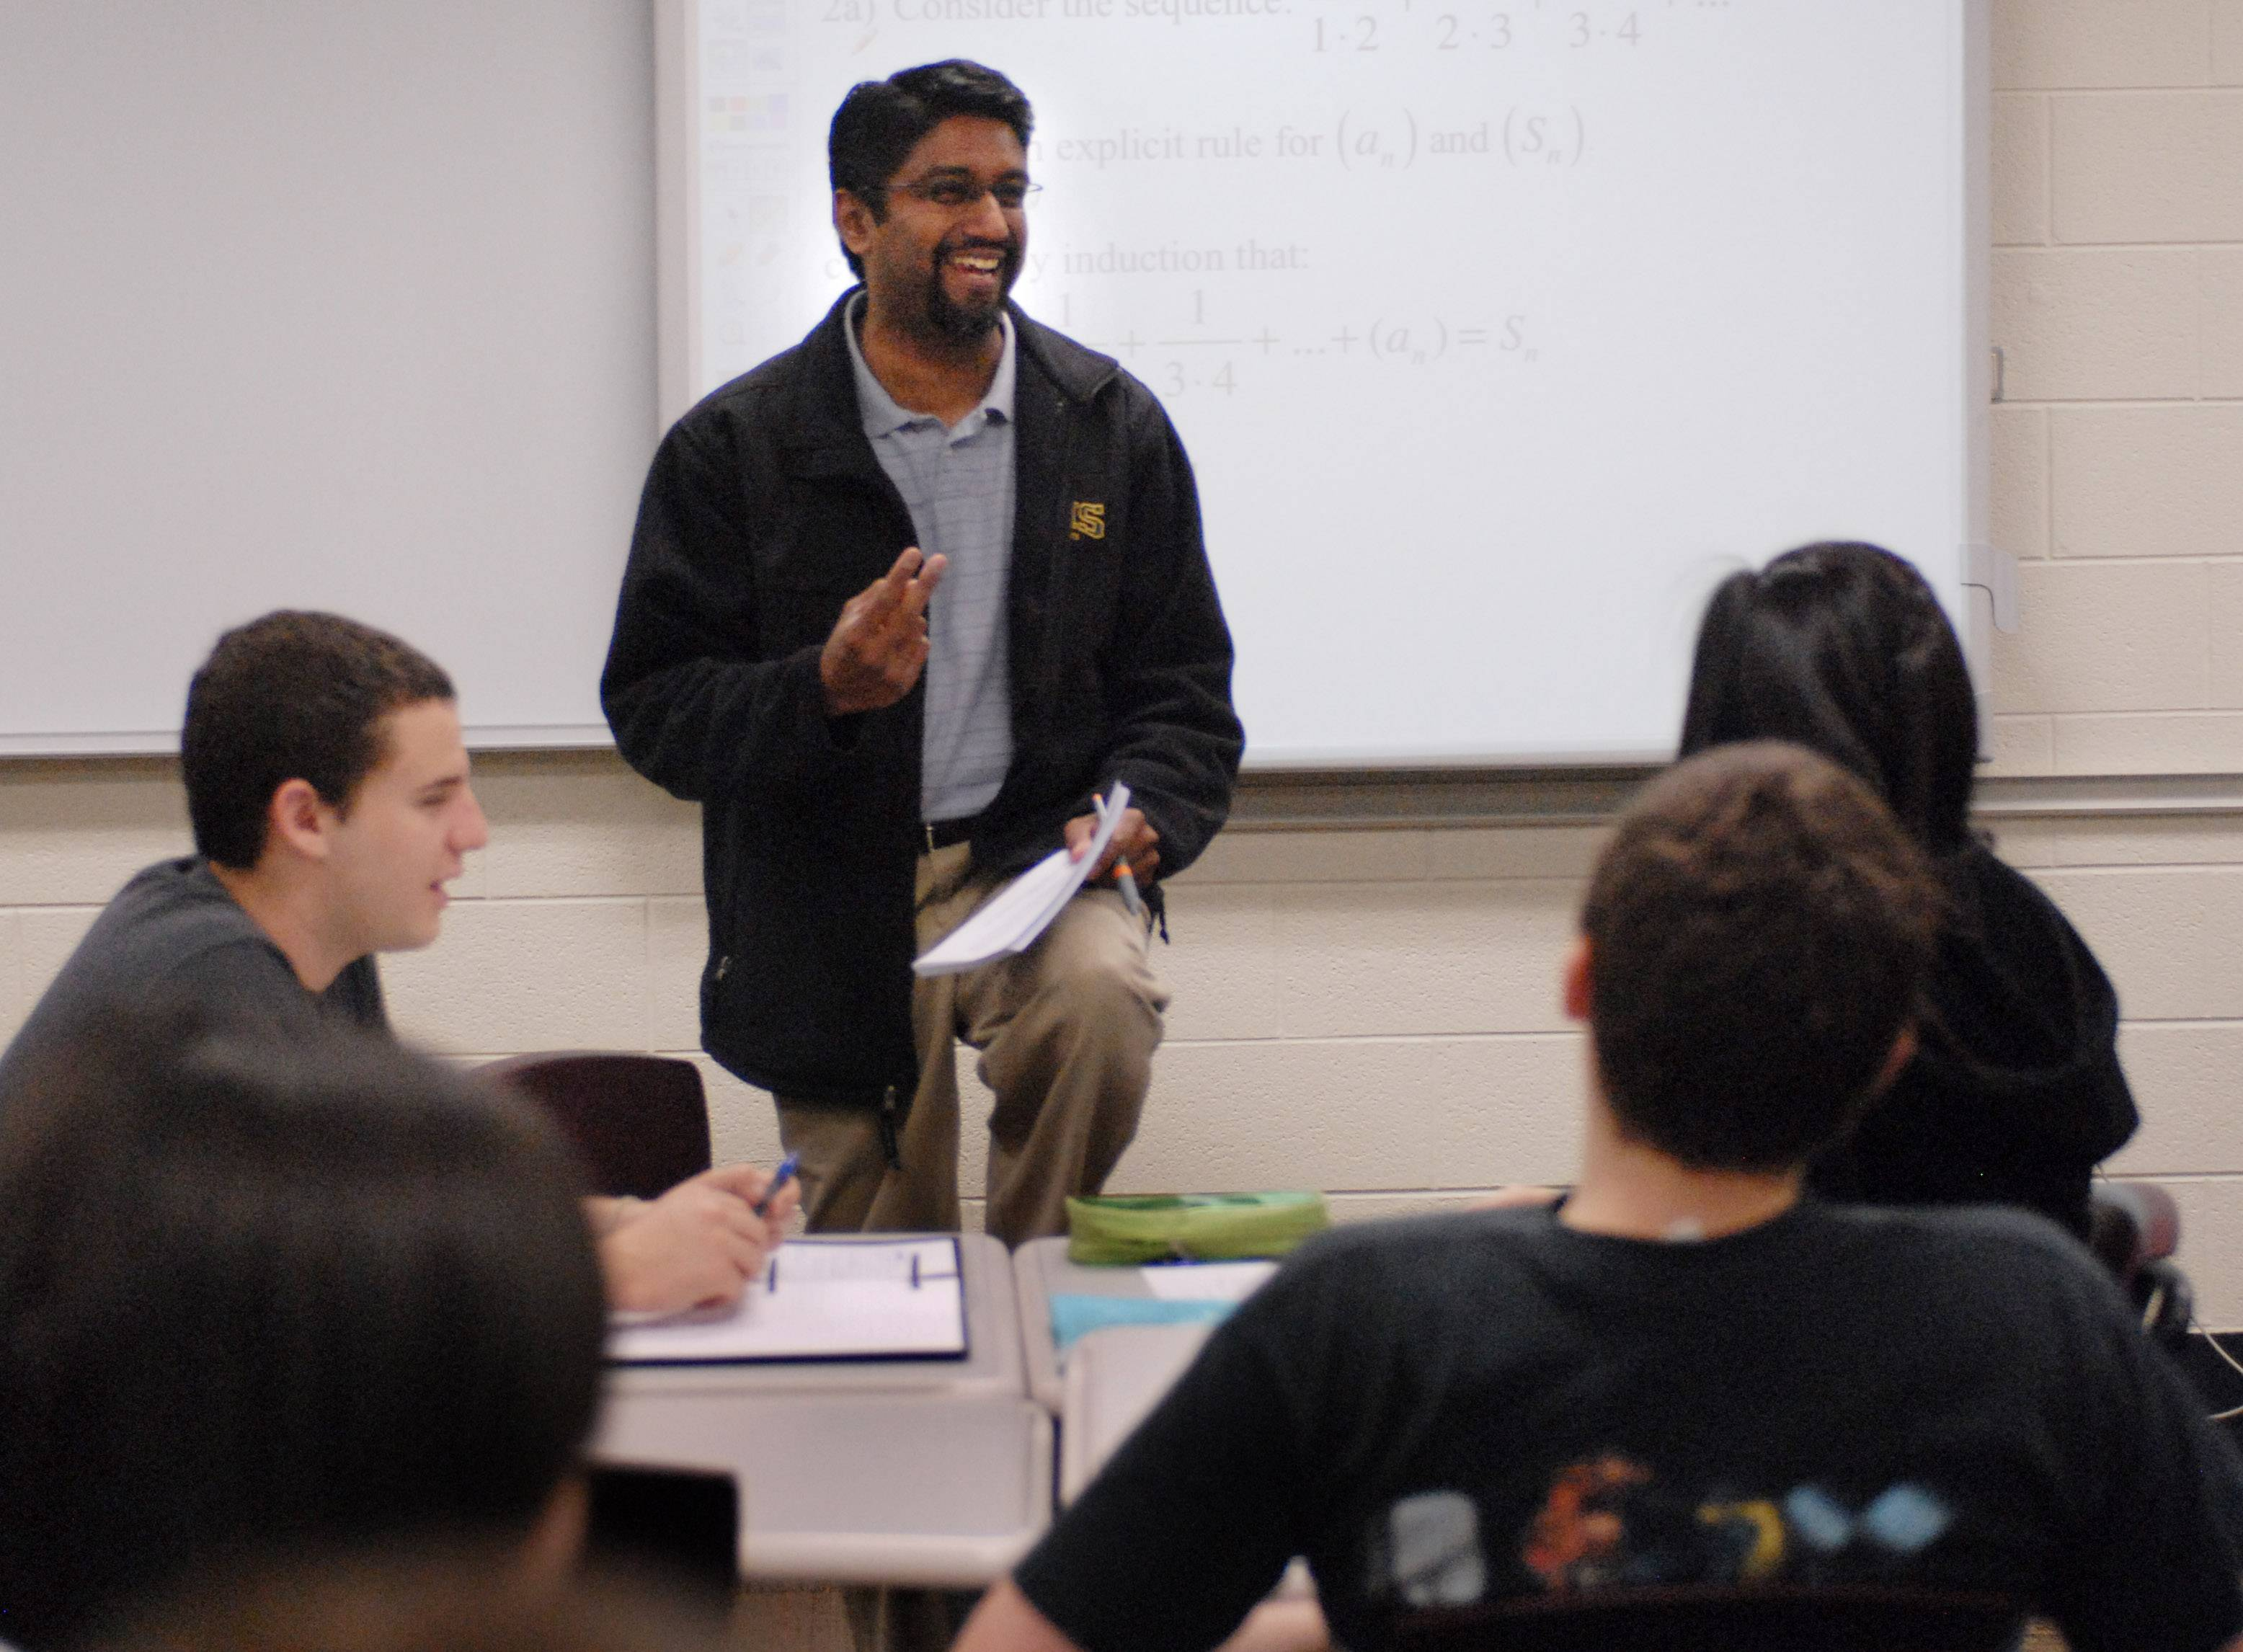 Darshan Jain, director of mathematics at Stevenson High School in Lincolnshire, has received a Presidential Award for Excellence in Mathematics and Science Teaching. Here he is when he taught in the classroom.